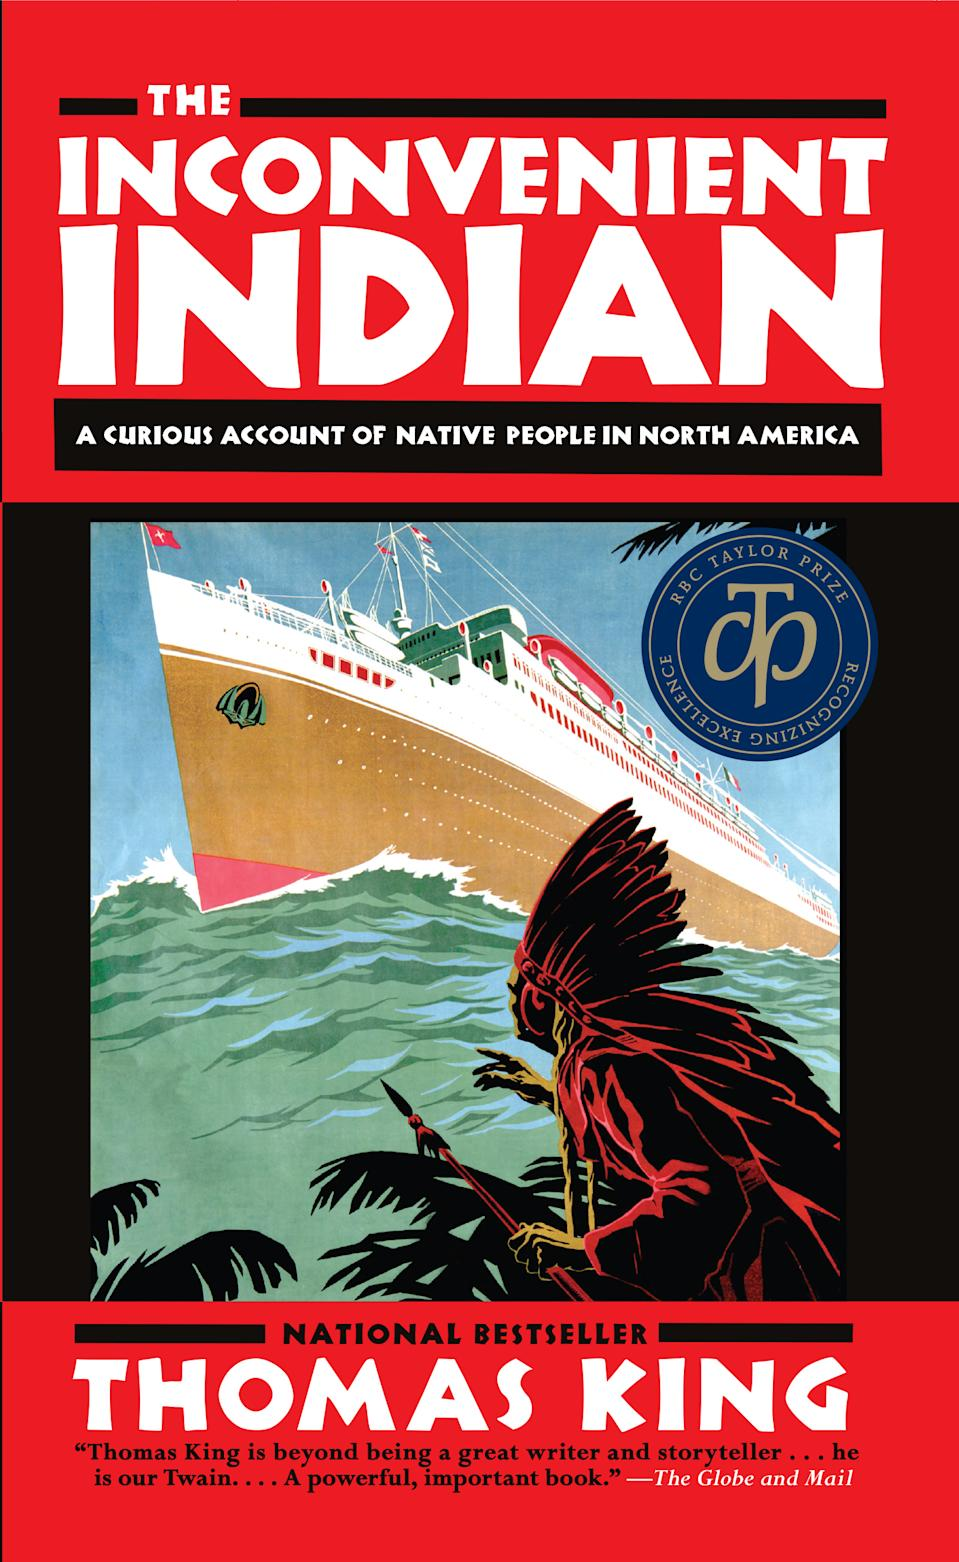 The Inconvenient Indian: A Curious Account of Native People in North America by Thomas King. Image via Indigo.